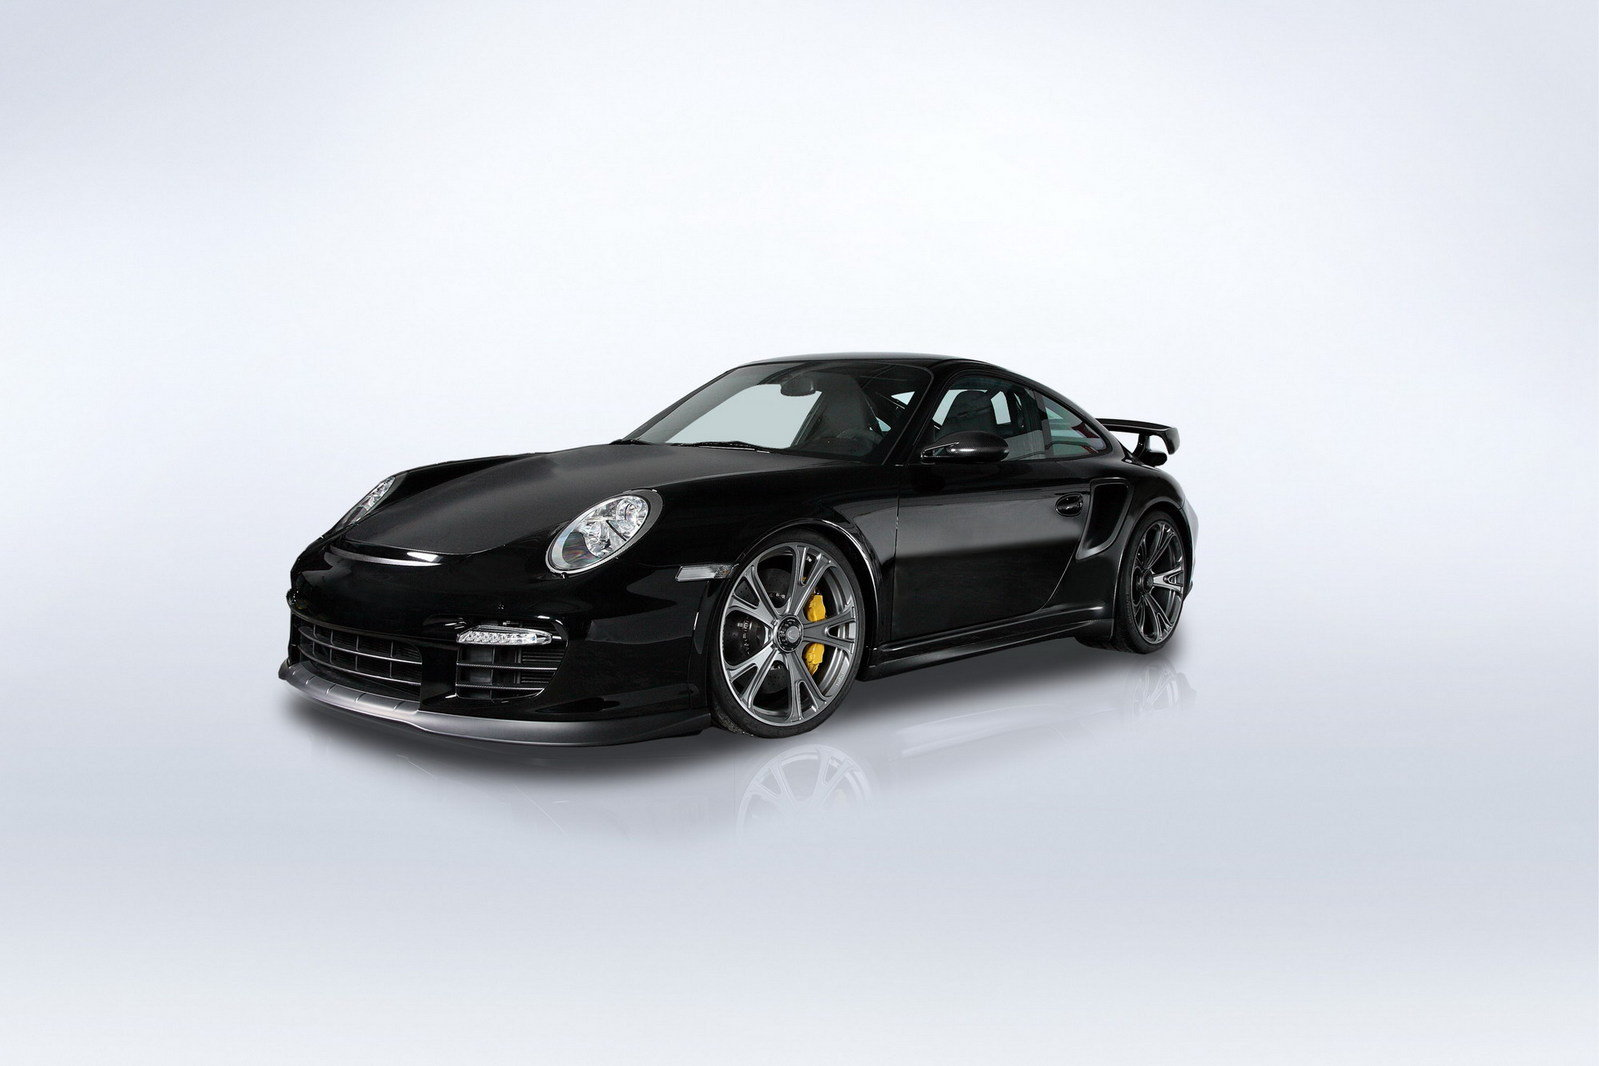 2011 porsche 911 gt2 rs by techart picture 389004 car review top speed. Black Bedroom Furniture Sets. Home Design Ideas